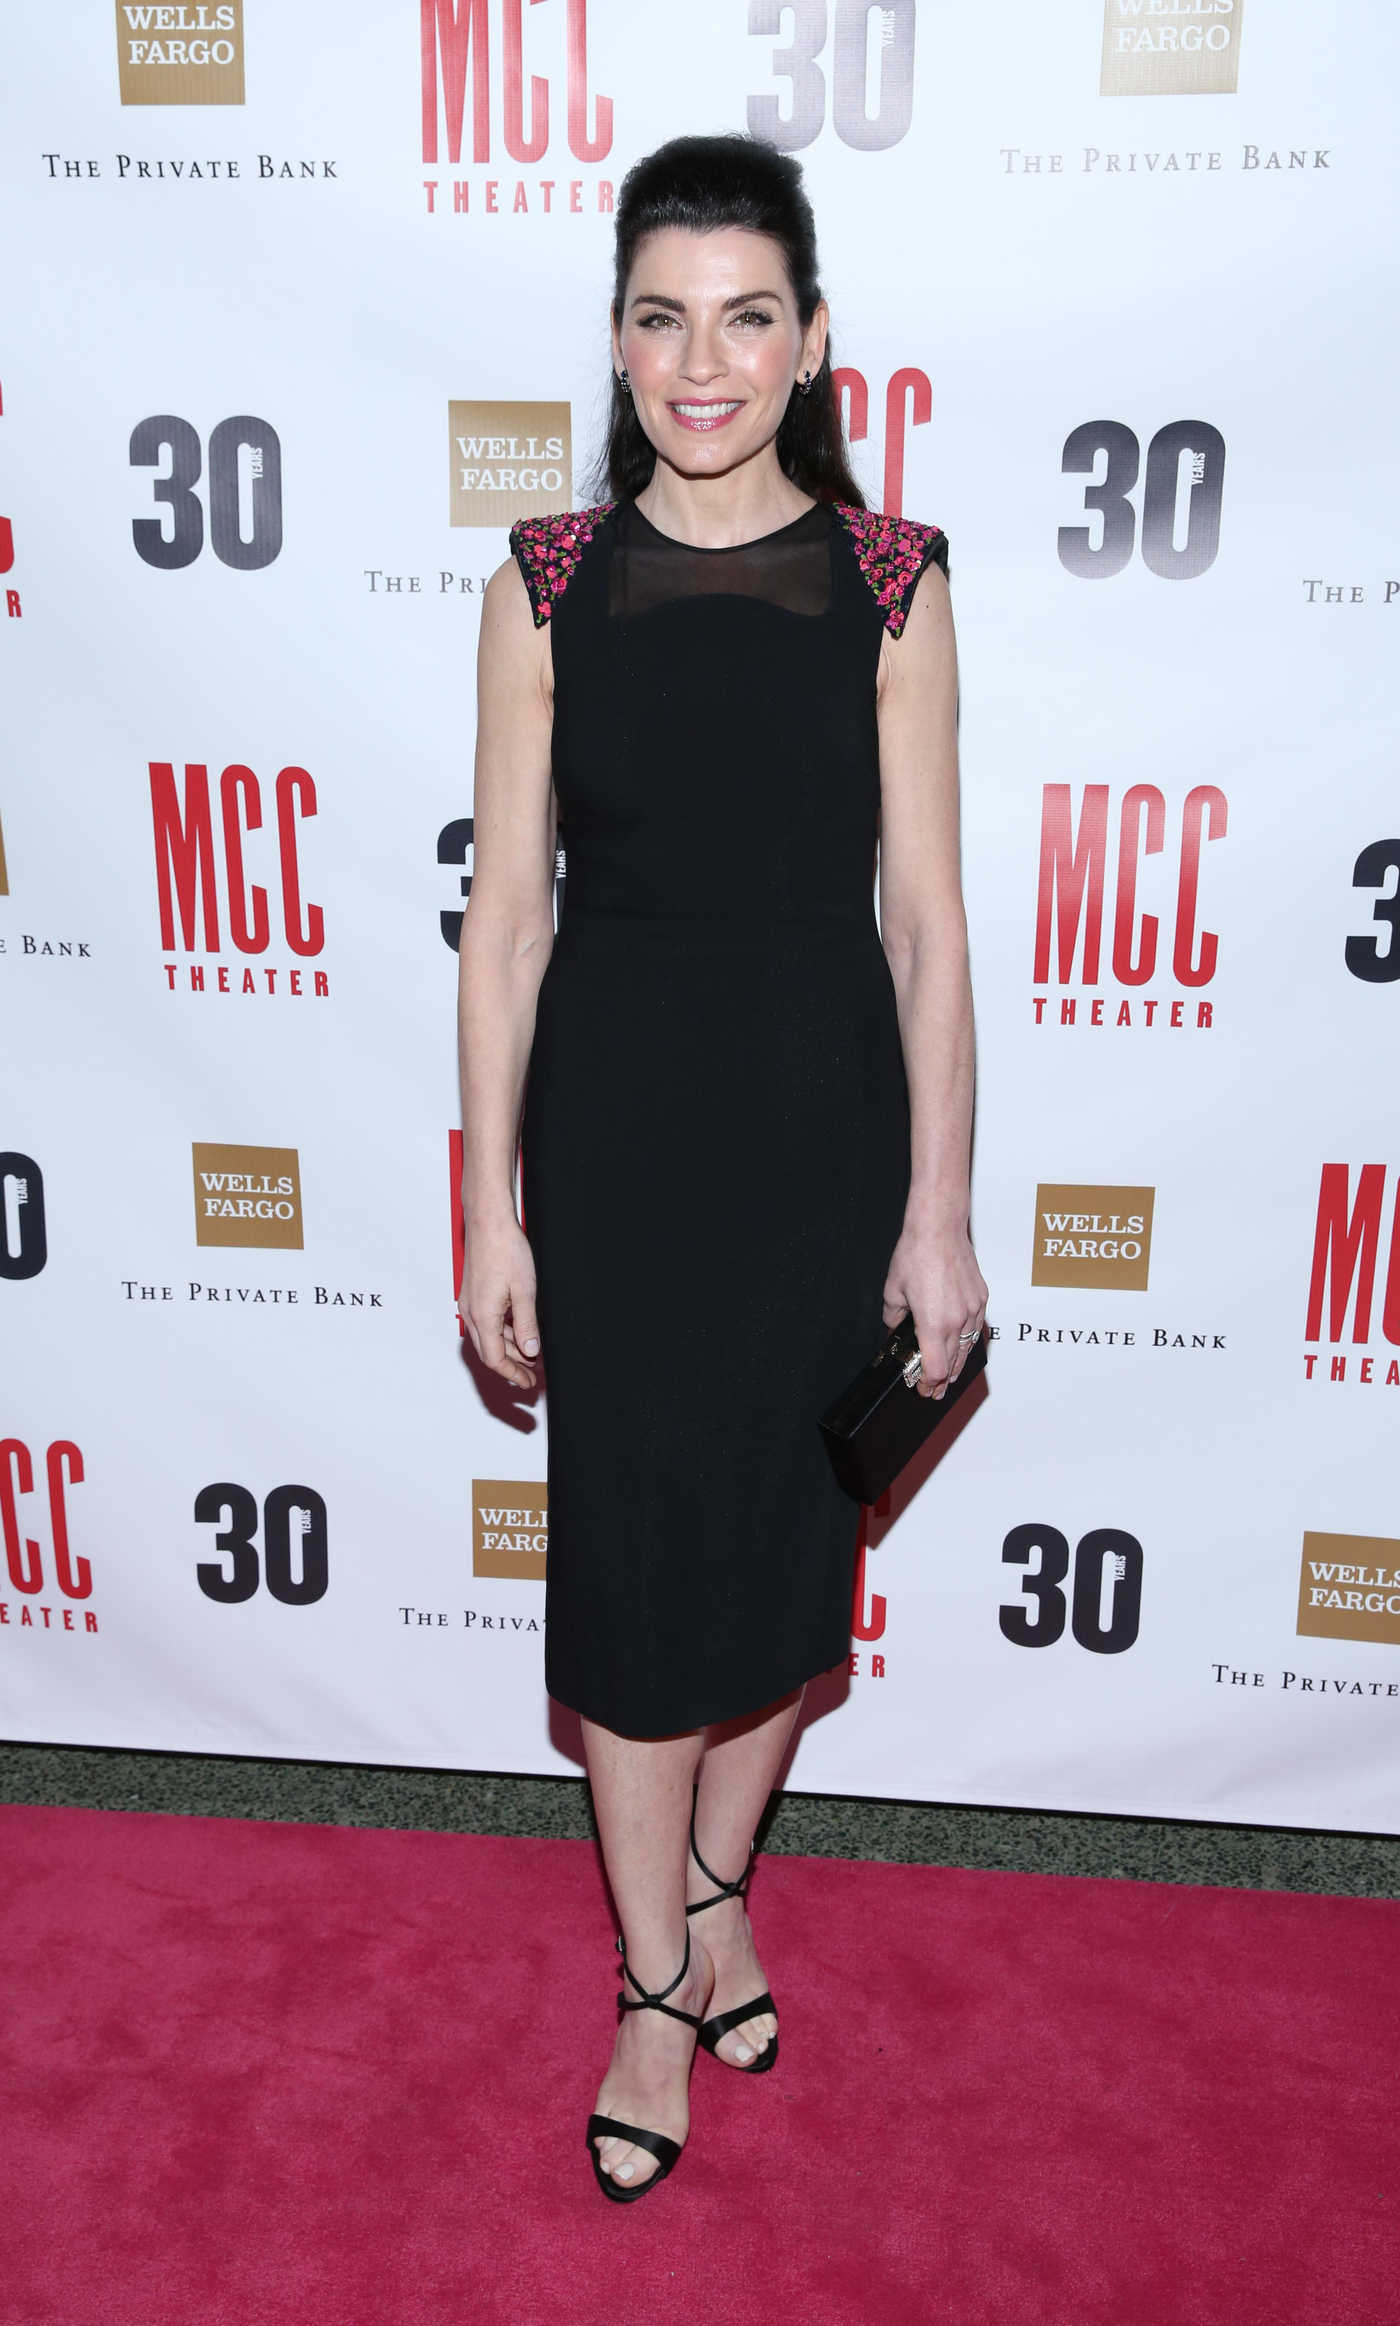 Julianna Margulies at the MCC Theater's Annual Miscast Gala in New York 04/03/2017